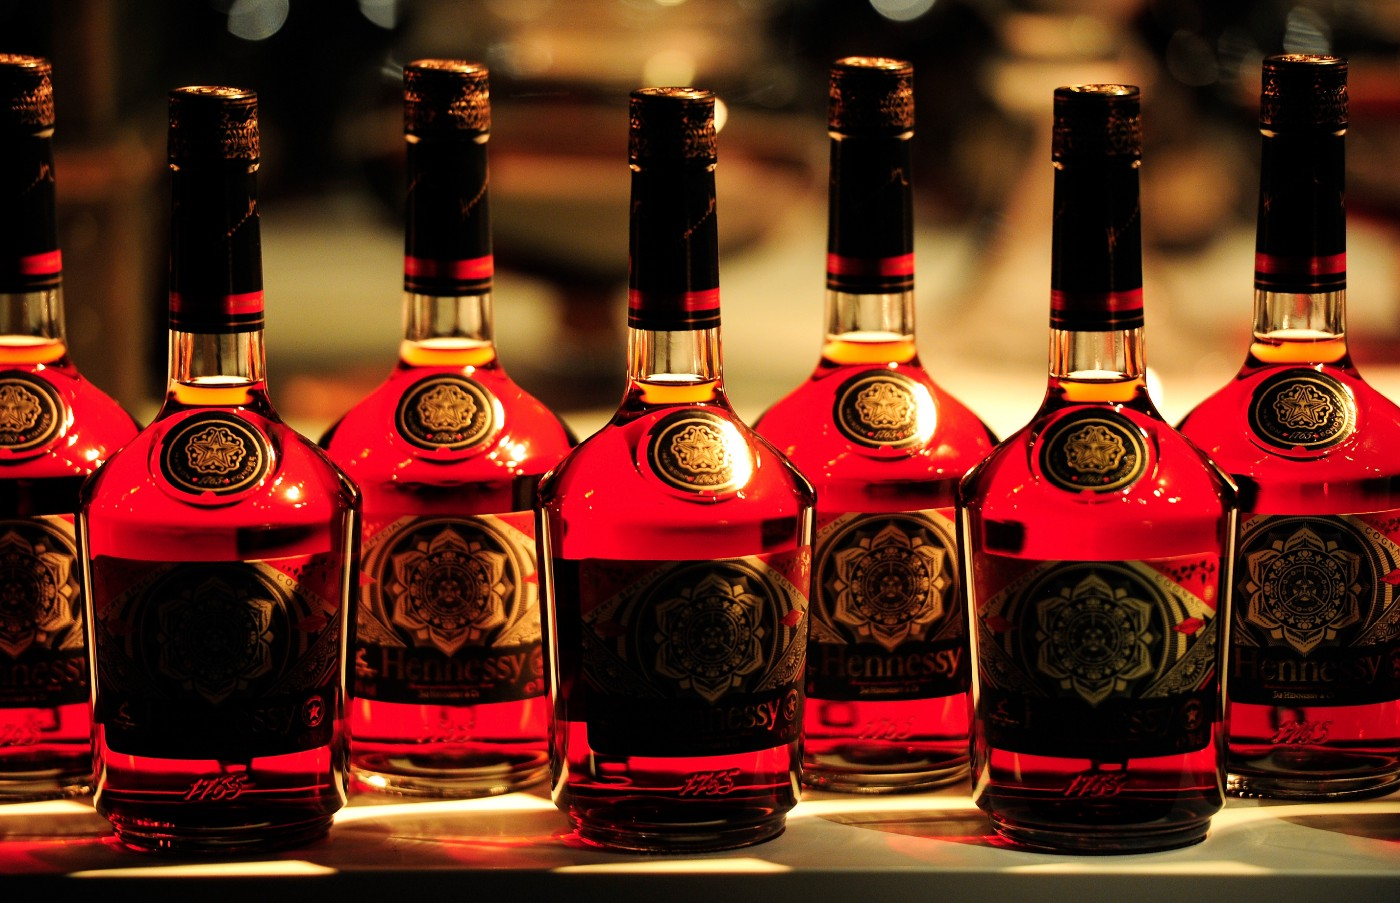 Special limited edition bottles of Hennessy cognac bottles.